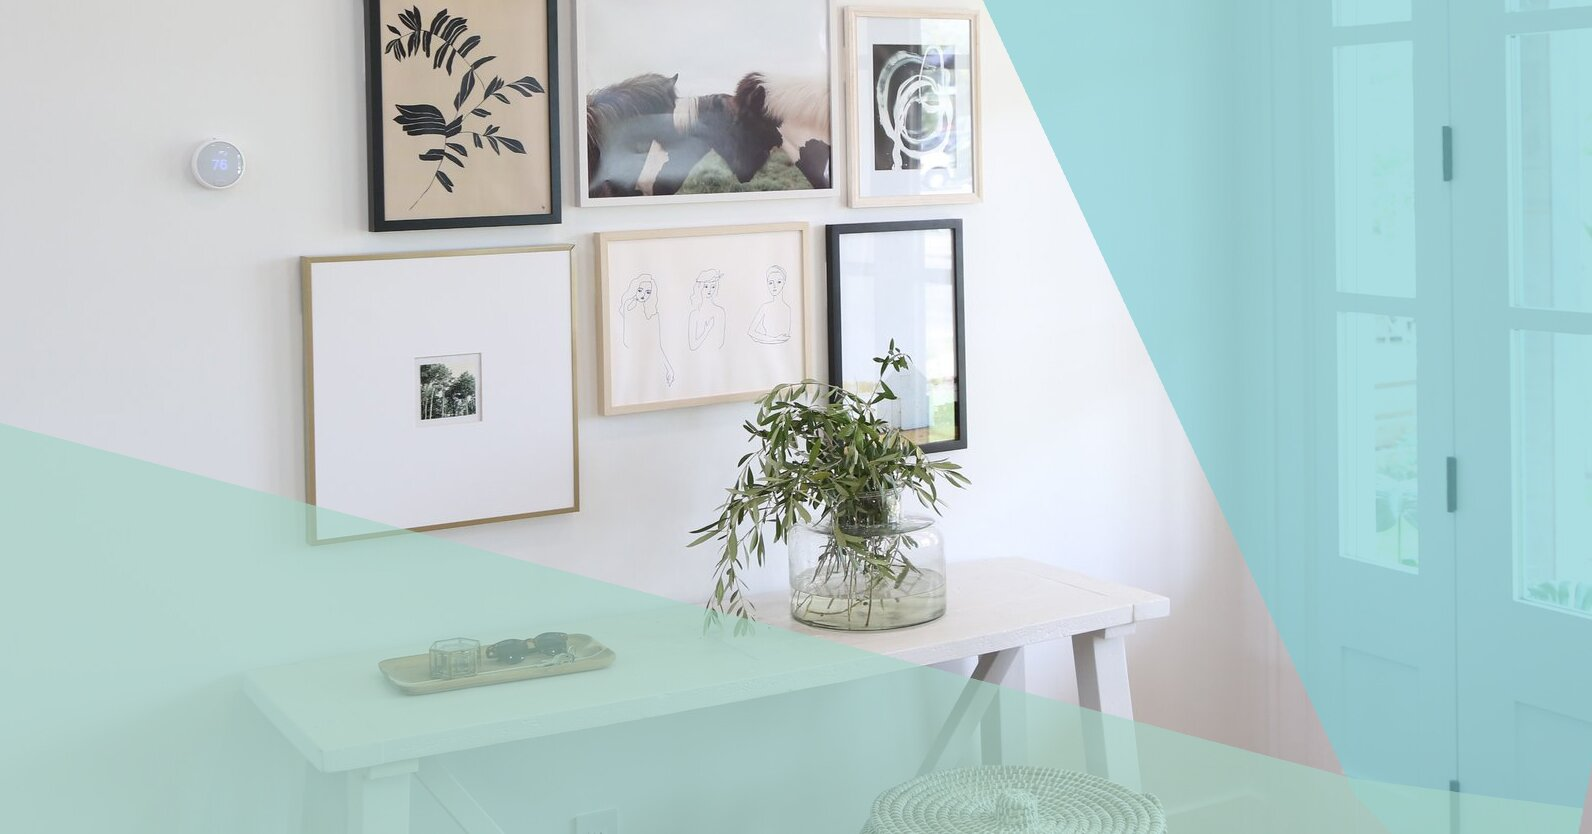 10 Best Places to Buy Affordable Art Online